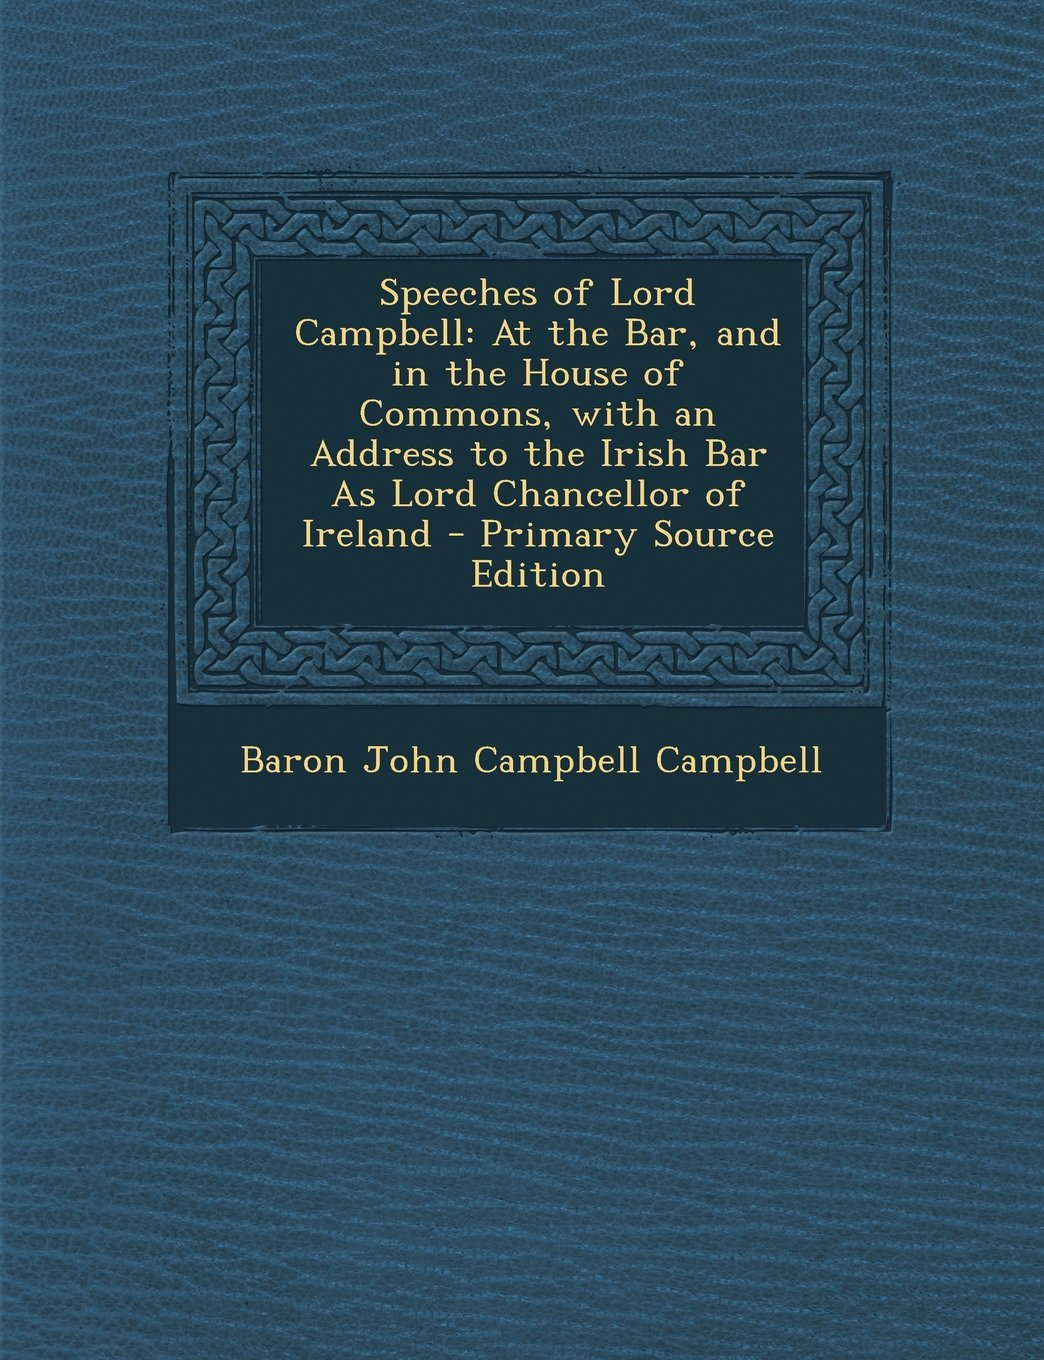 Download Speeches of Lord Campbell: At the Bar, and in the House of Commons, with an Address to the Irish Bar As Lord Chancellor of Ireland - Primary Source Edition pdf